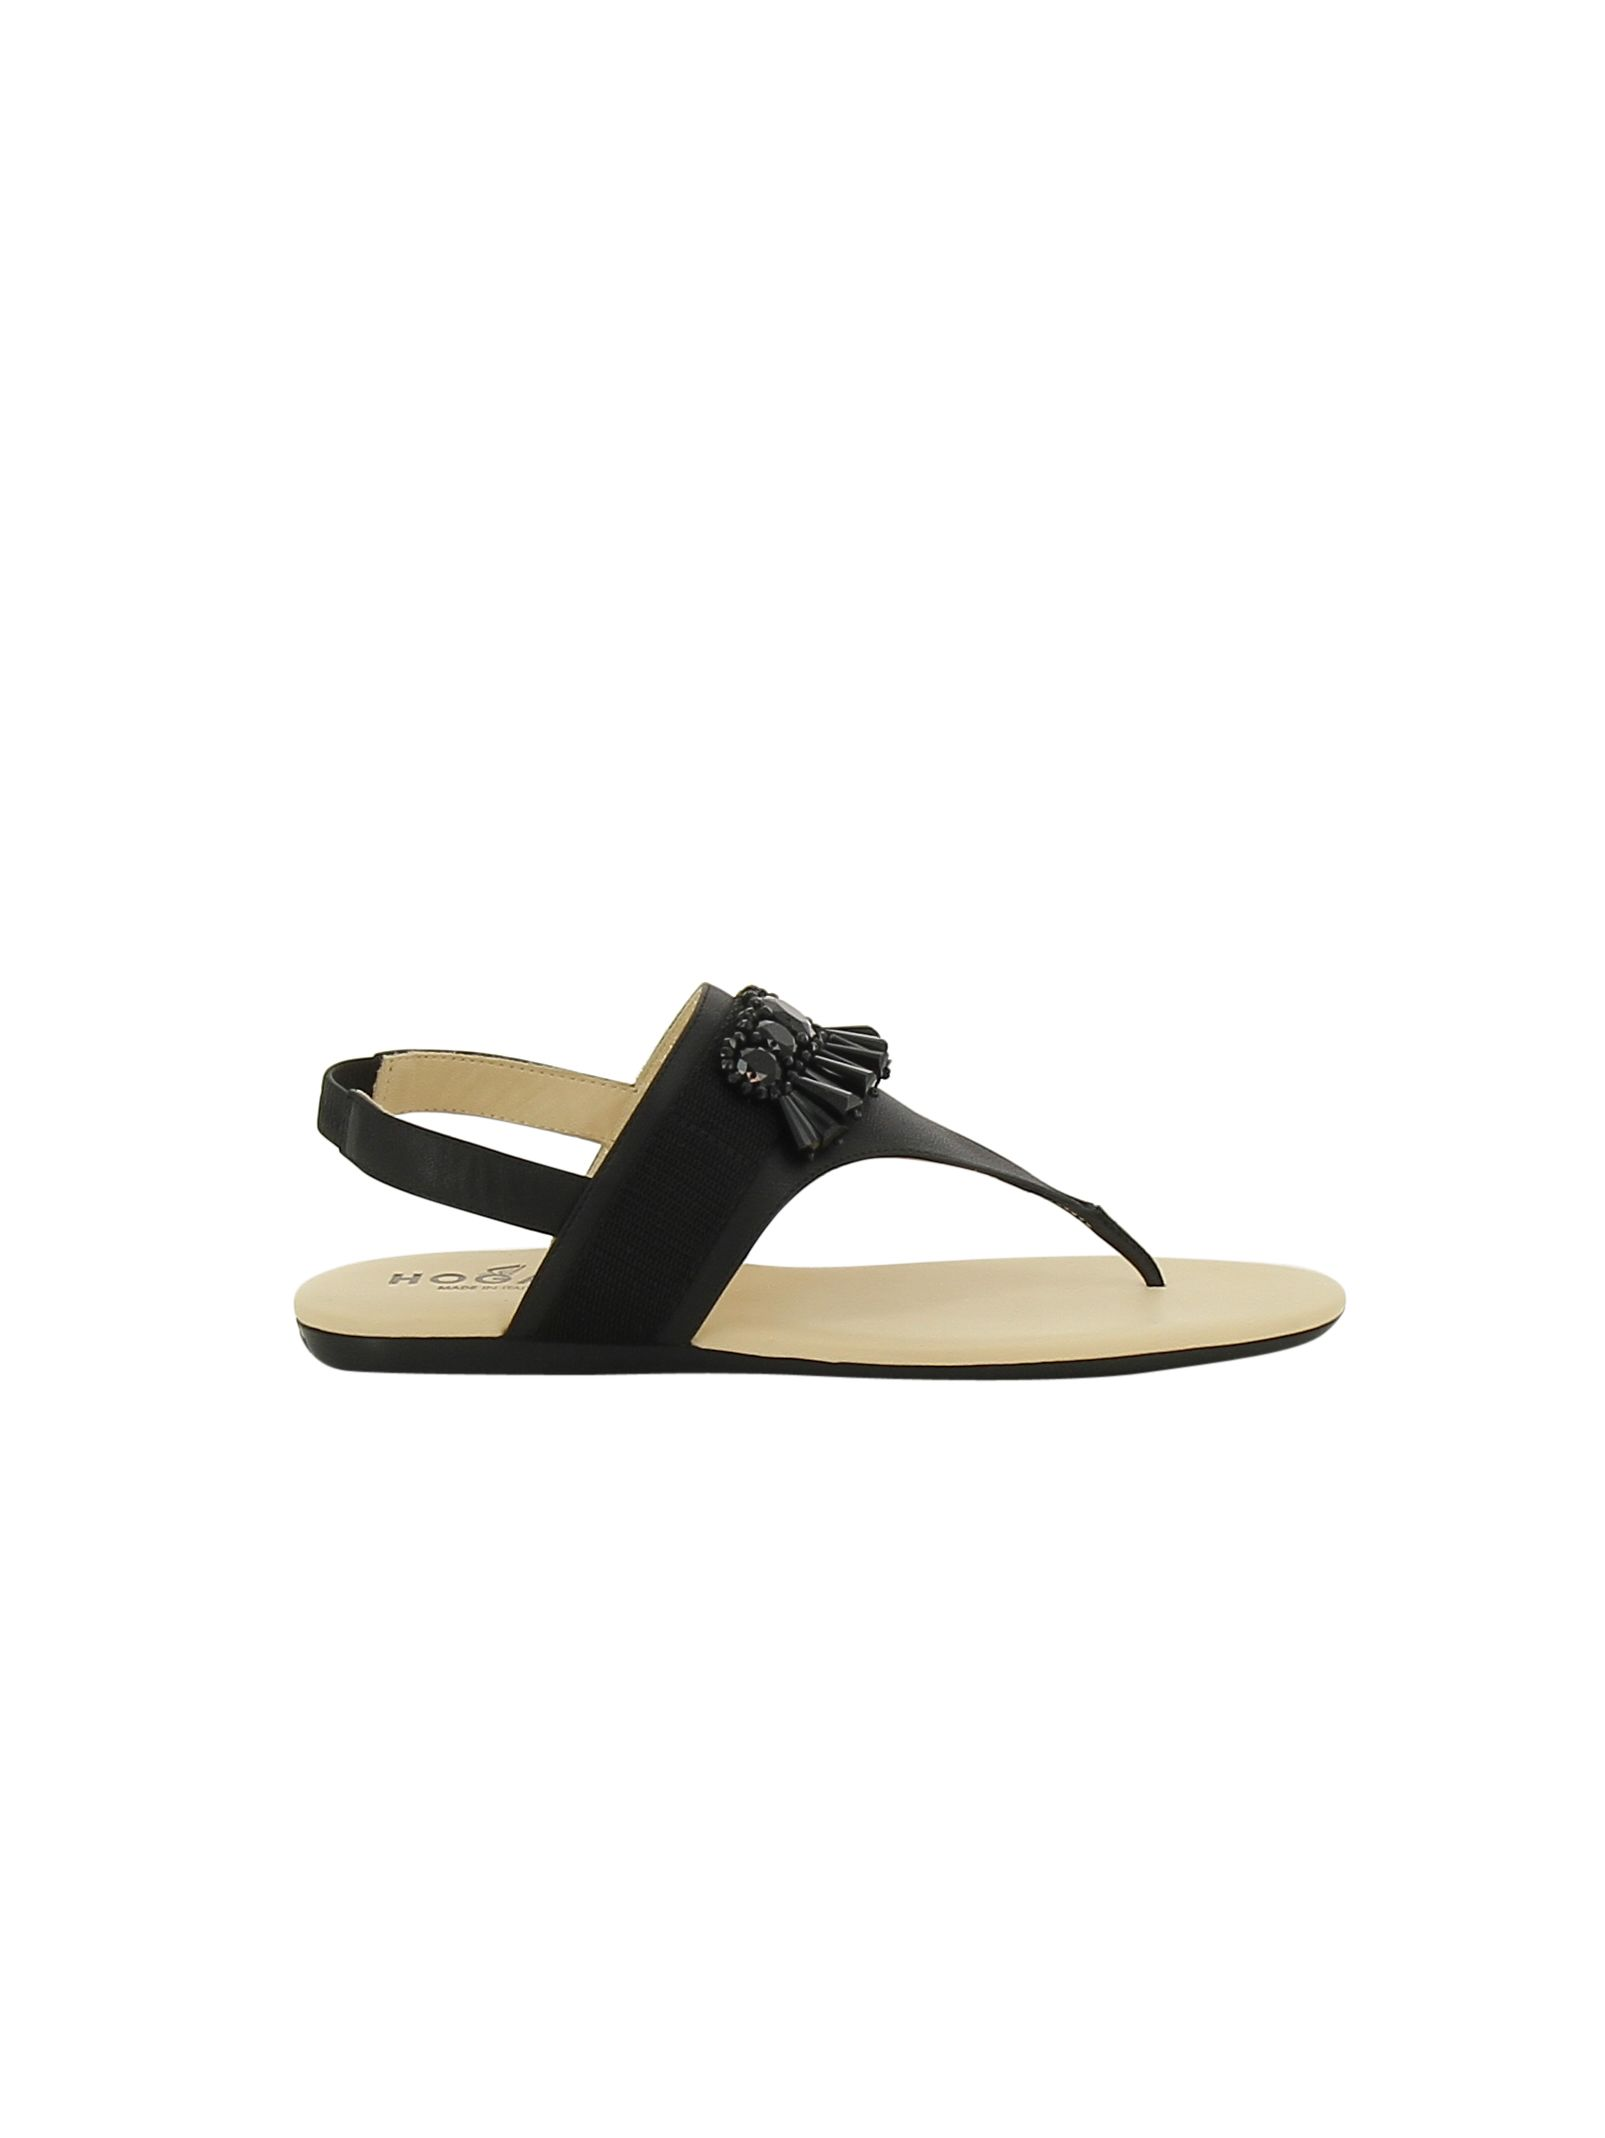 Hogan Valencia Flat Sandals